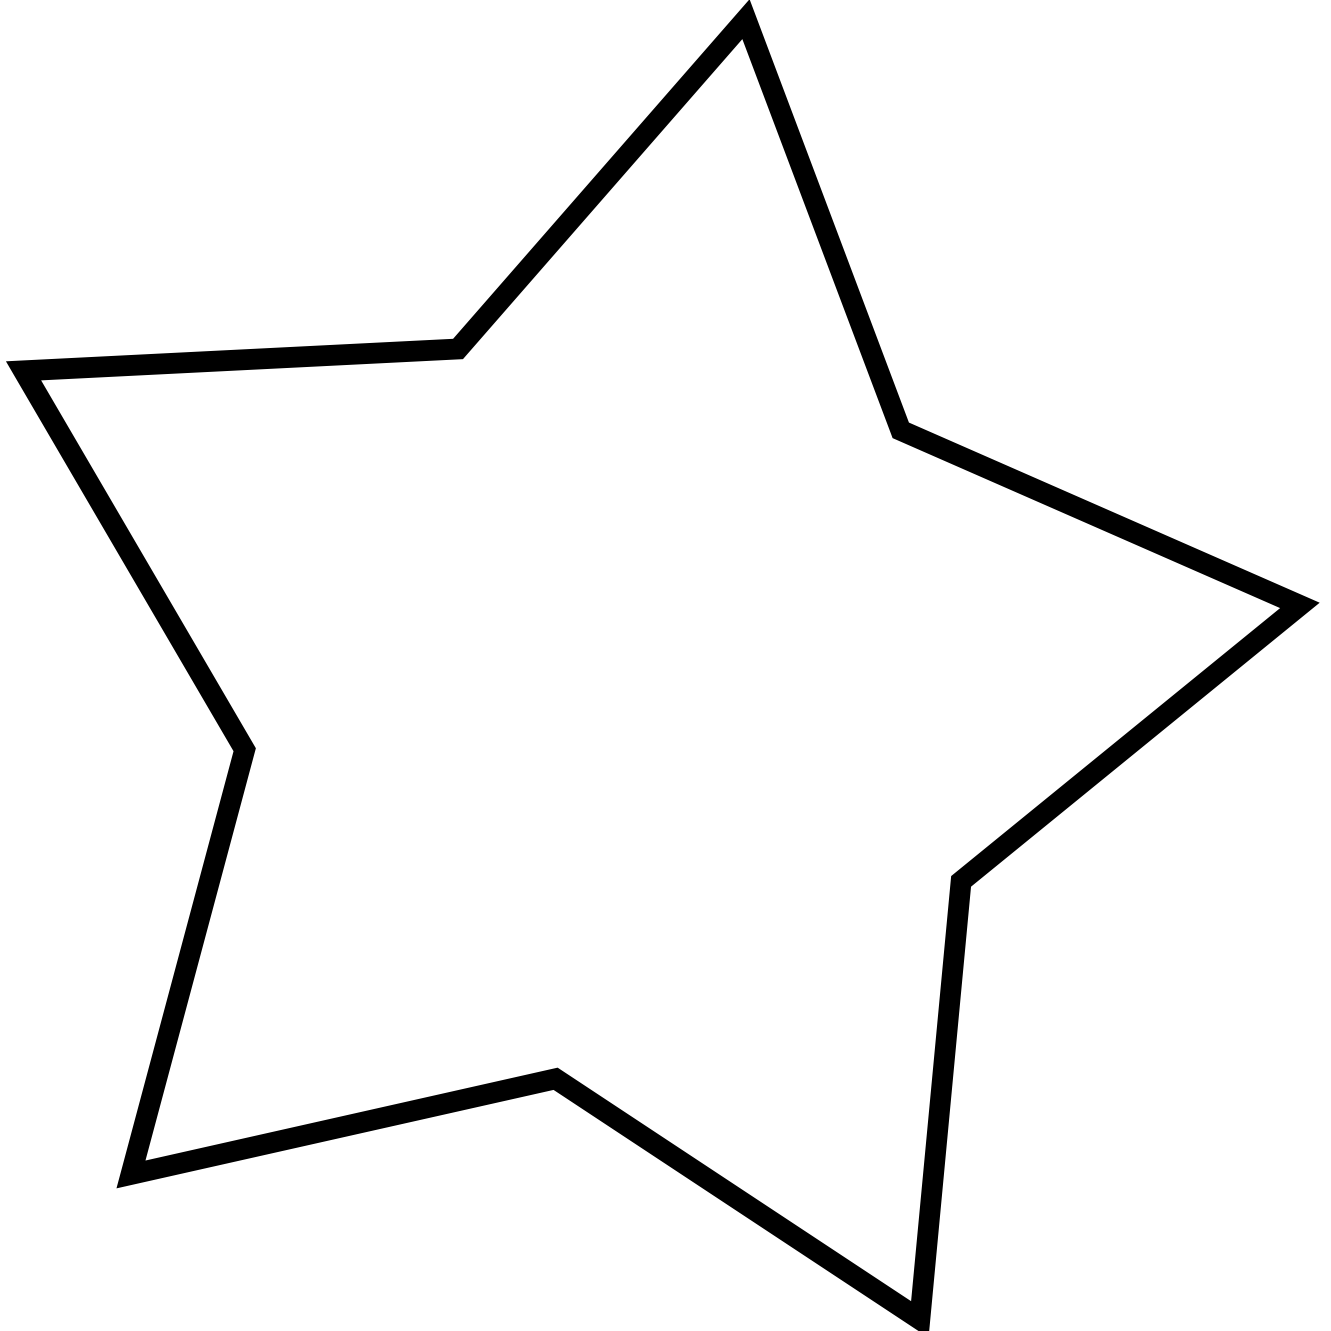 Rustic star clipart clip black and white Star Clipart Black And White | Clipart Panda - Free Clipart Images clip black and white